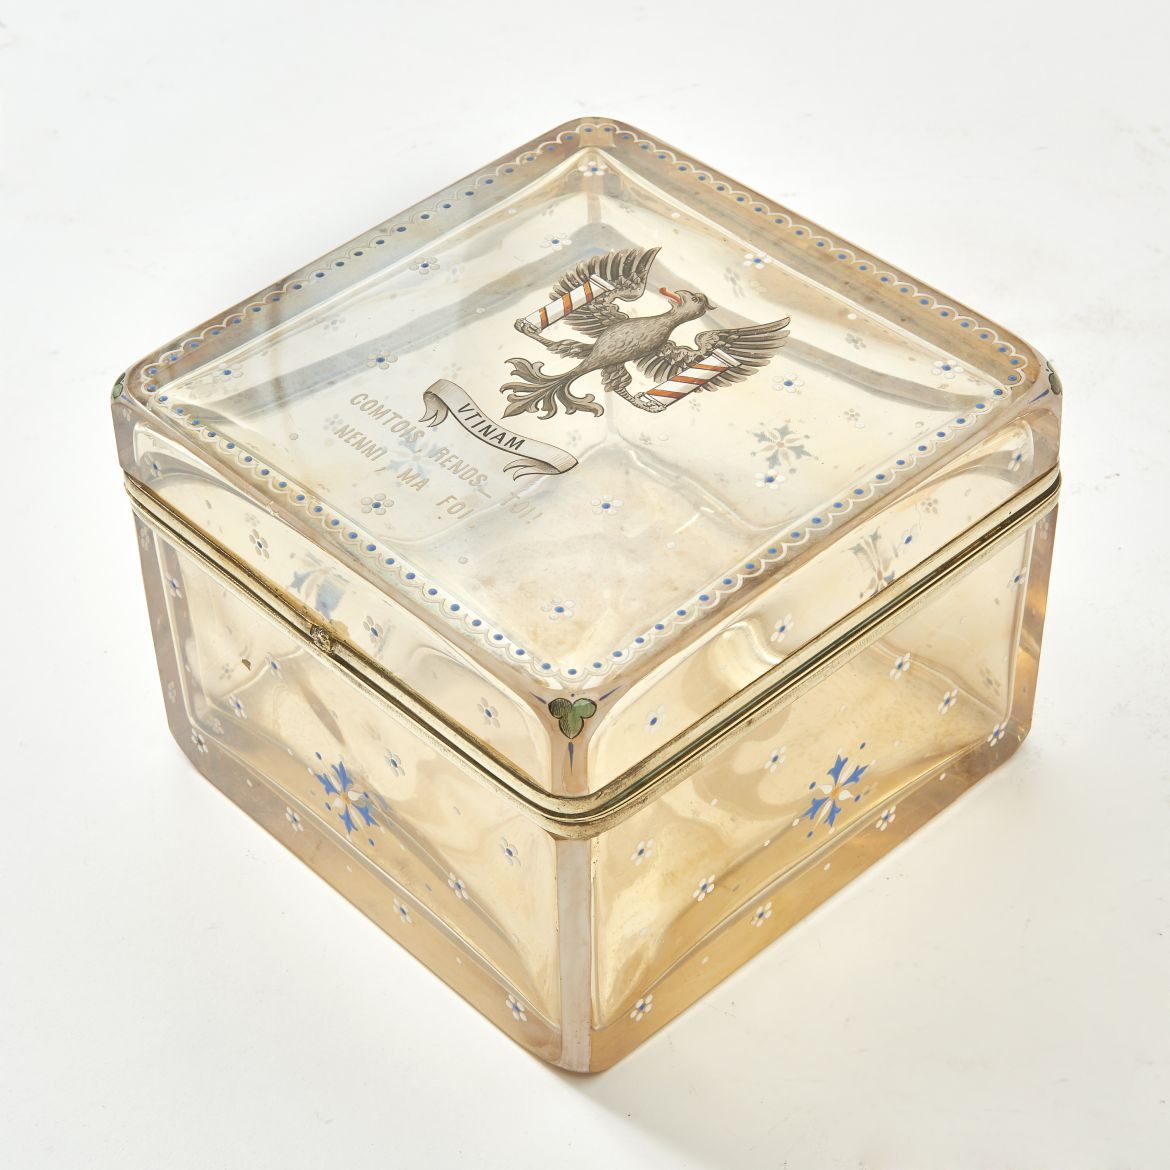 French Glass Box With Eagle Crest